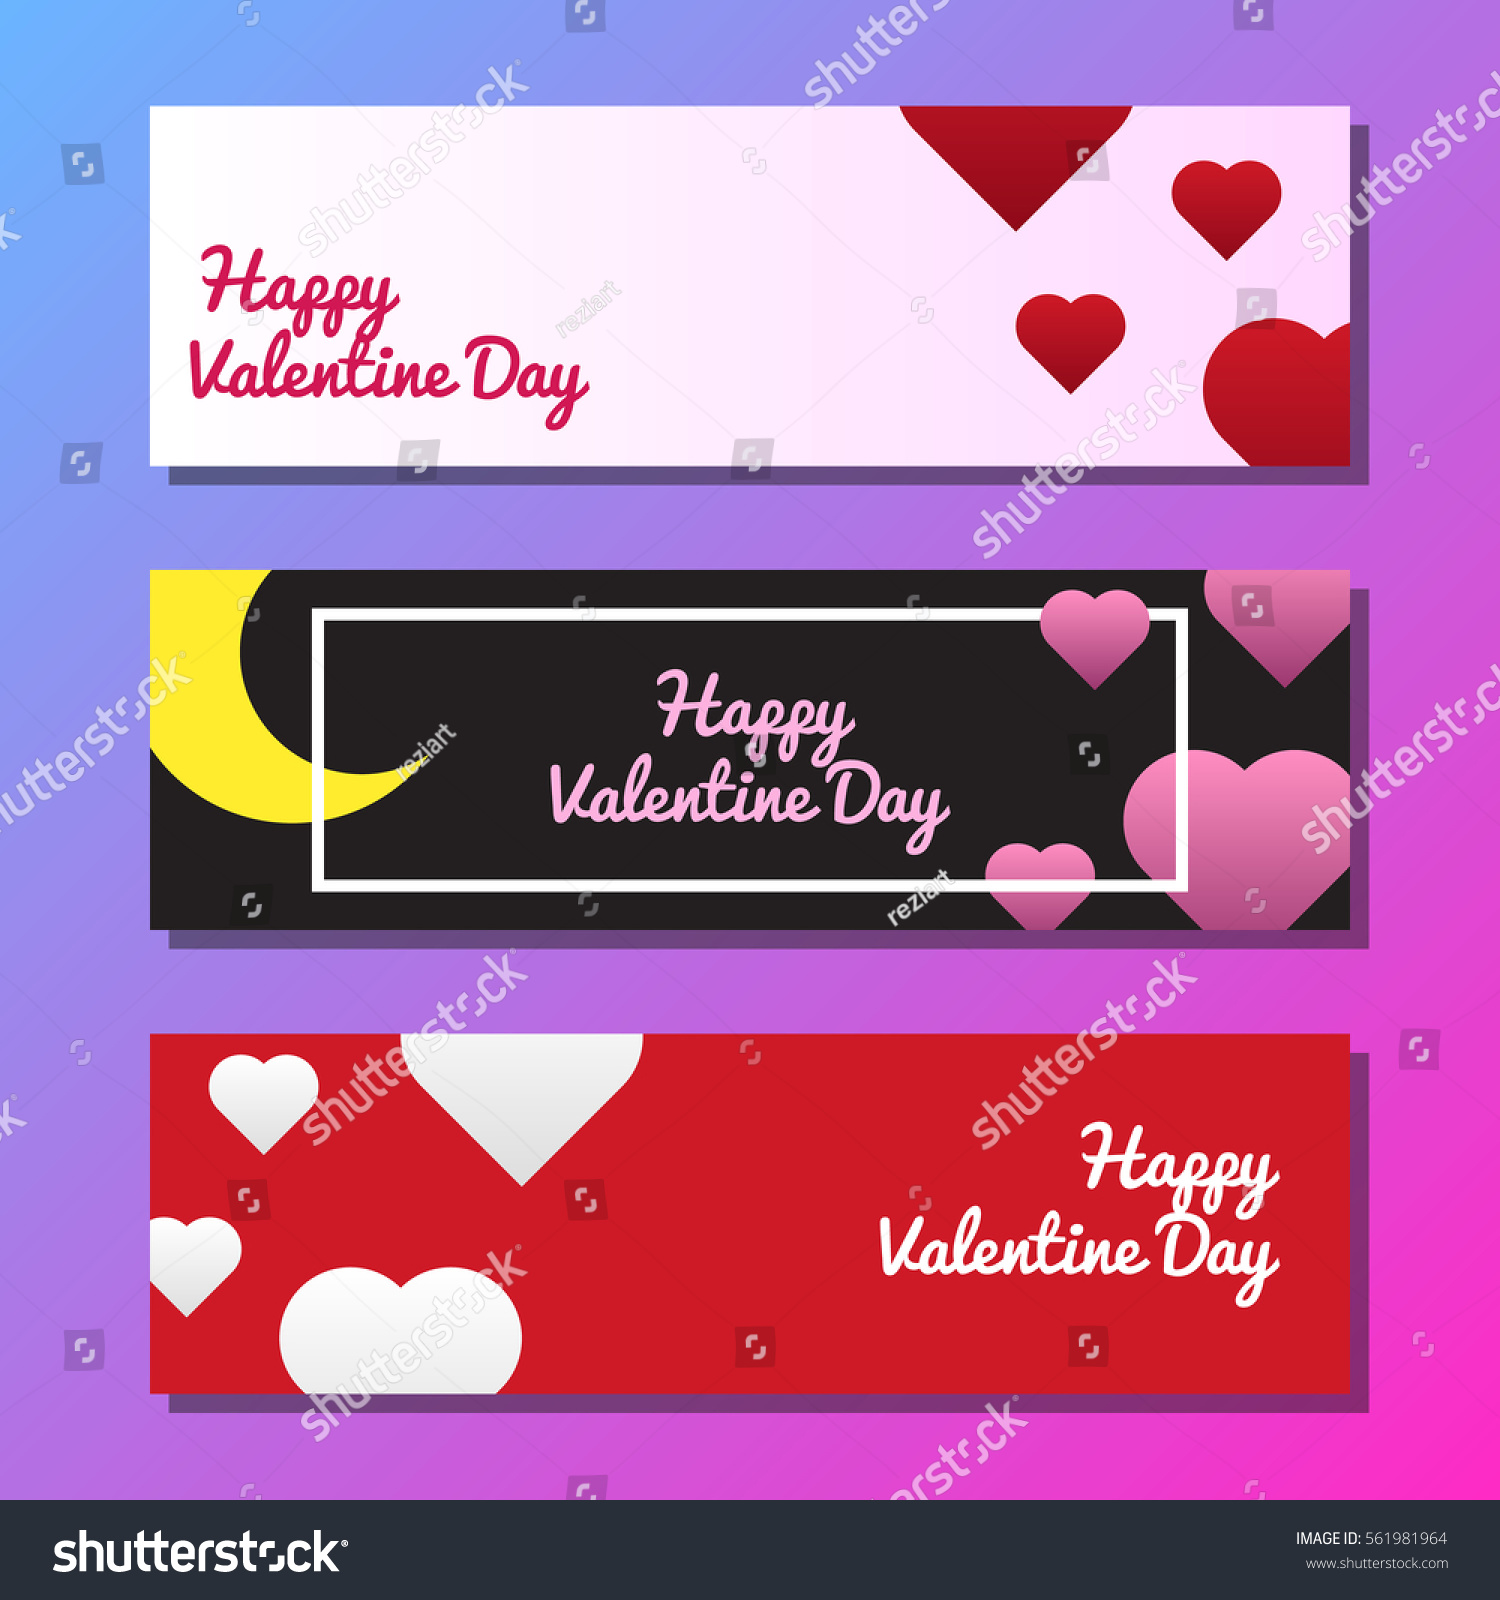 Greeting card voucher discount sale price stock vector 561981964 greeting card voucher discount sale price tag for business use or invitation kristyandbryce Image collections